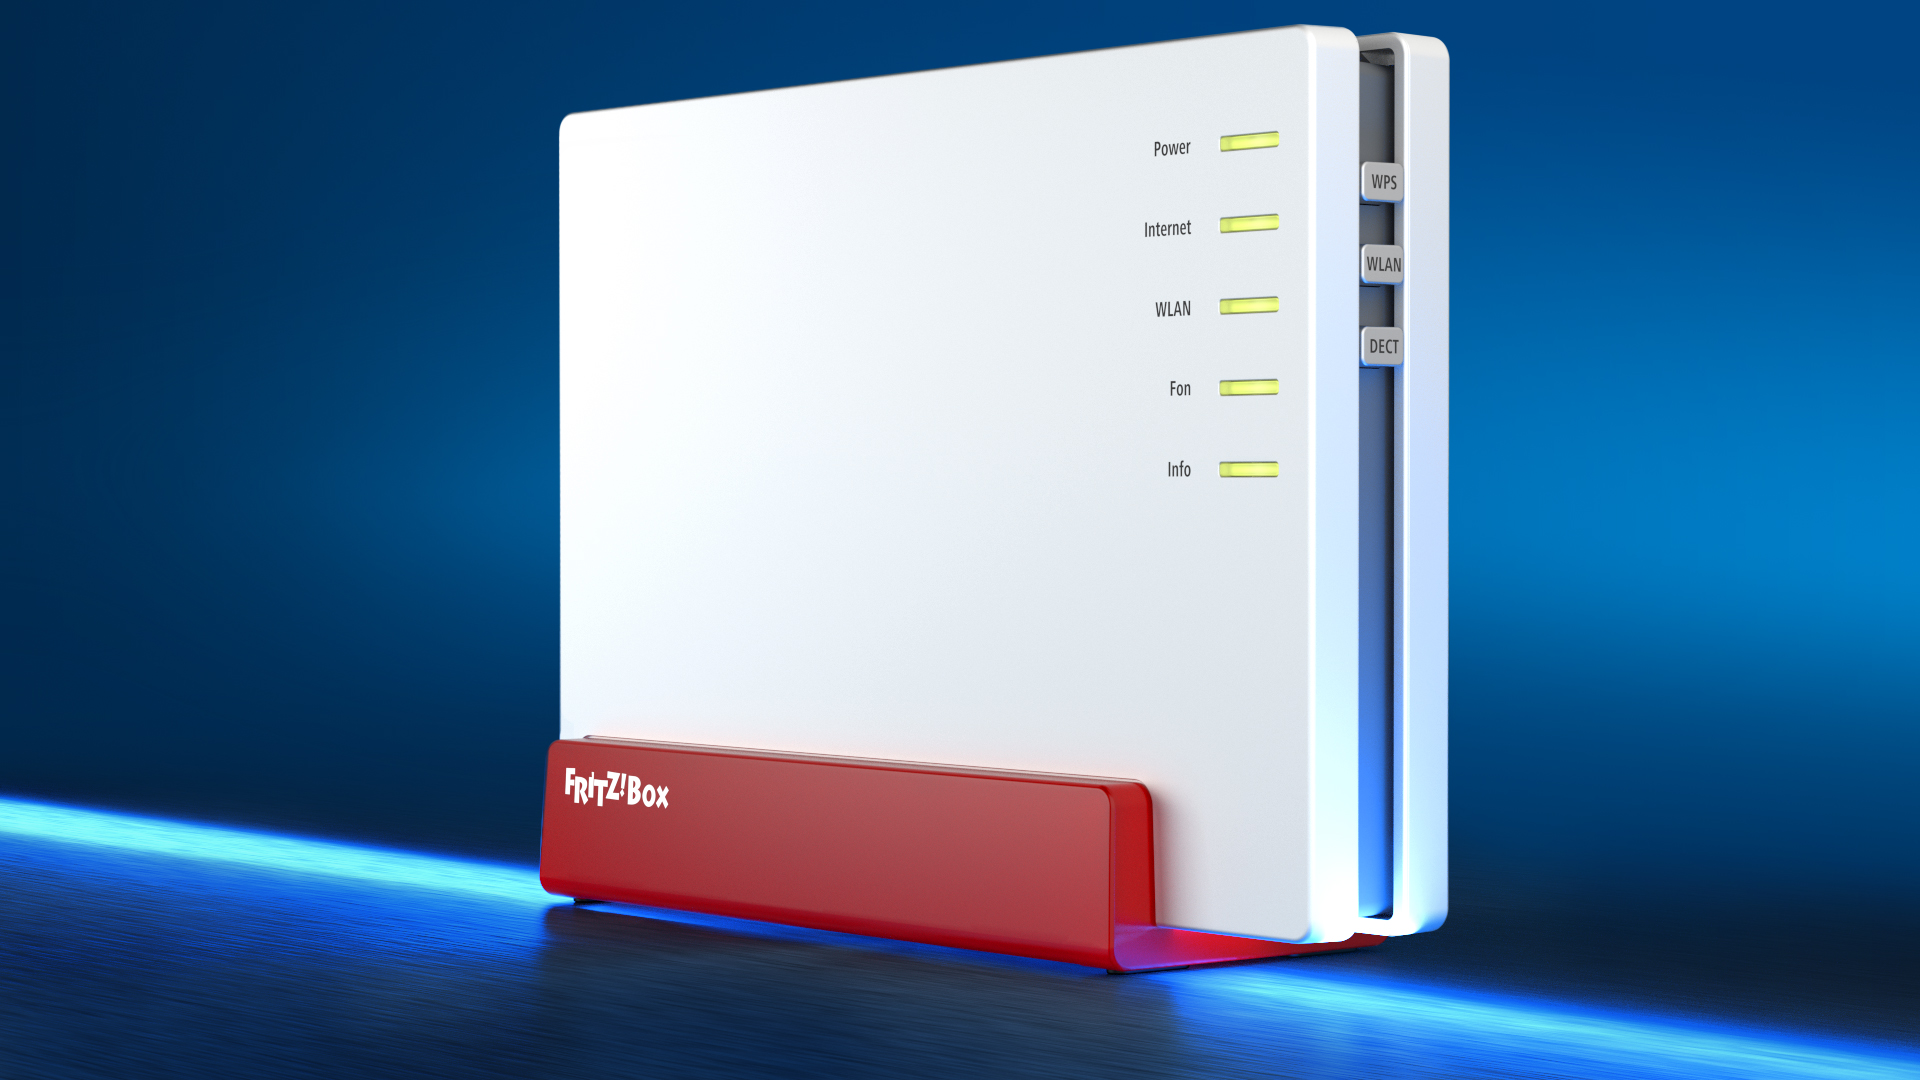 Fritz!Box WiFi Modem & Home Media Hub High-speed Internet for a host of applications.